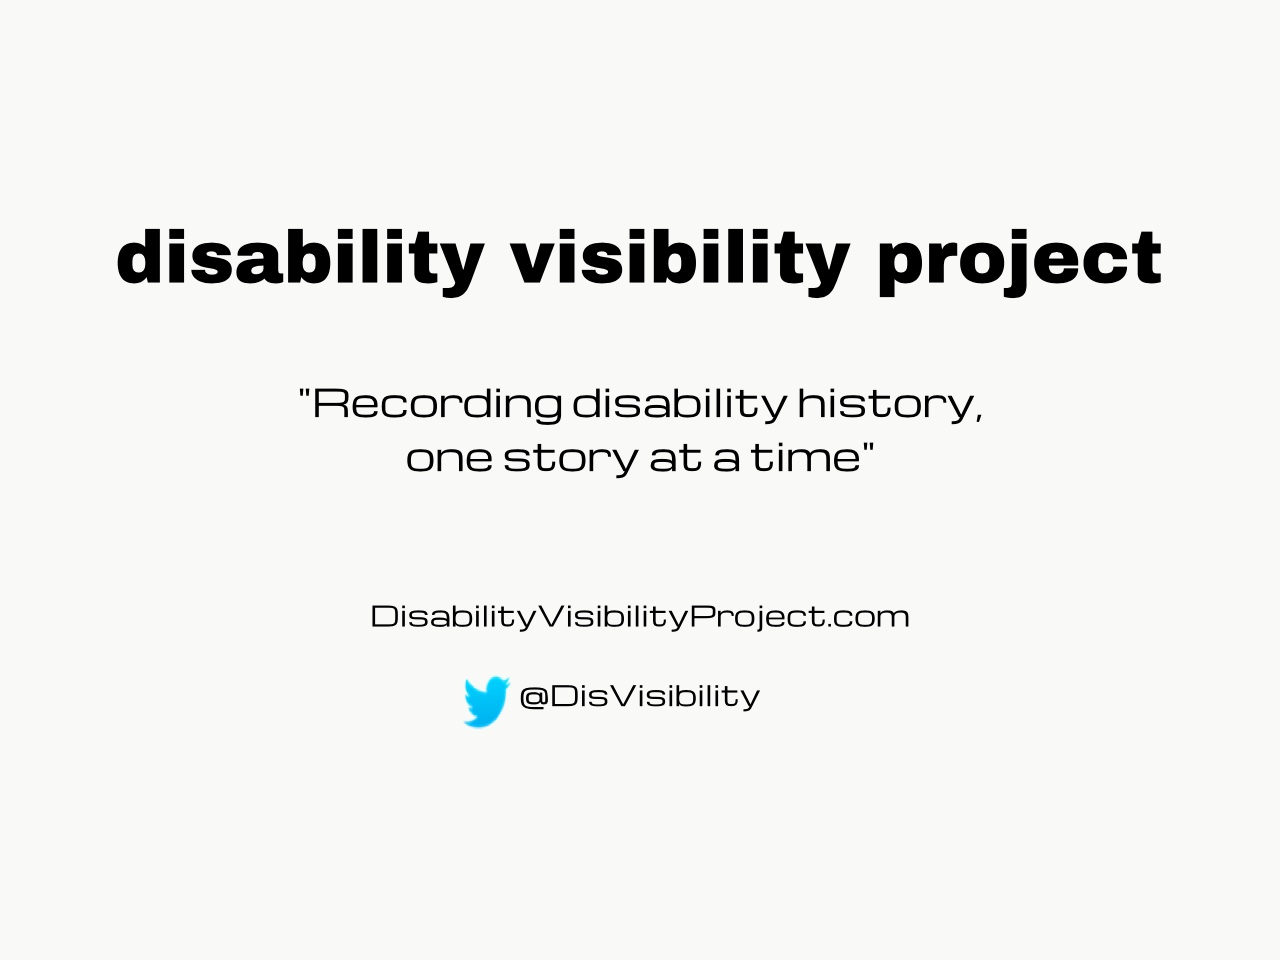 "Bright white background with black text centered in the image that reads: disability visibility project, ""Recording disability history, one story at a time"" DisabilityVisibilityProject.com, Twitter bird icon, @DisVisibility"